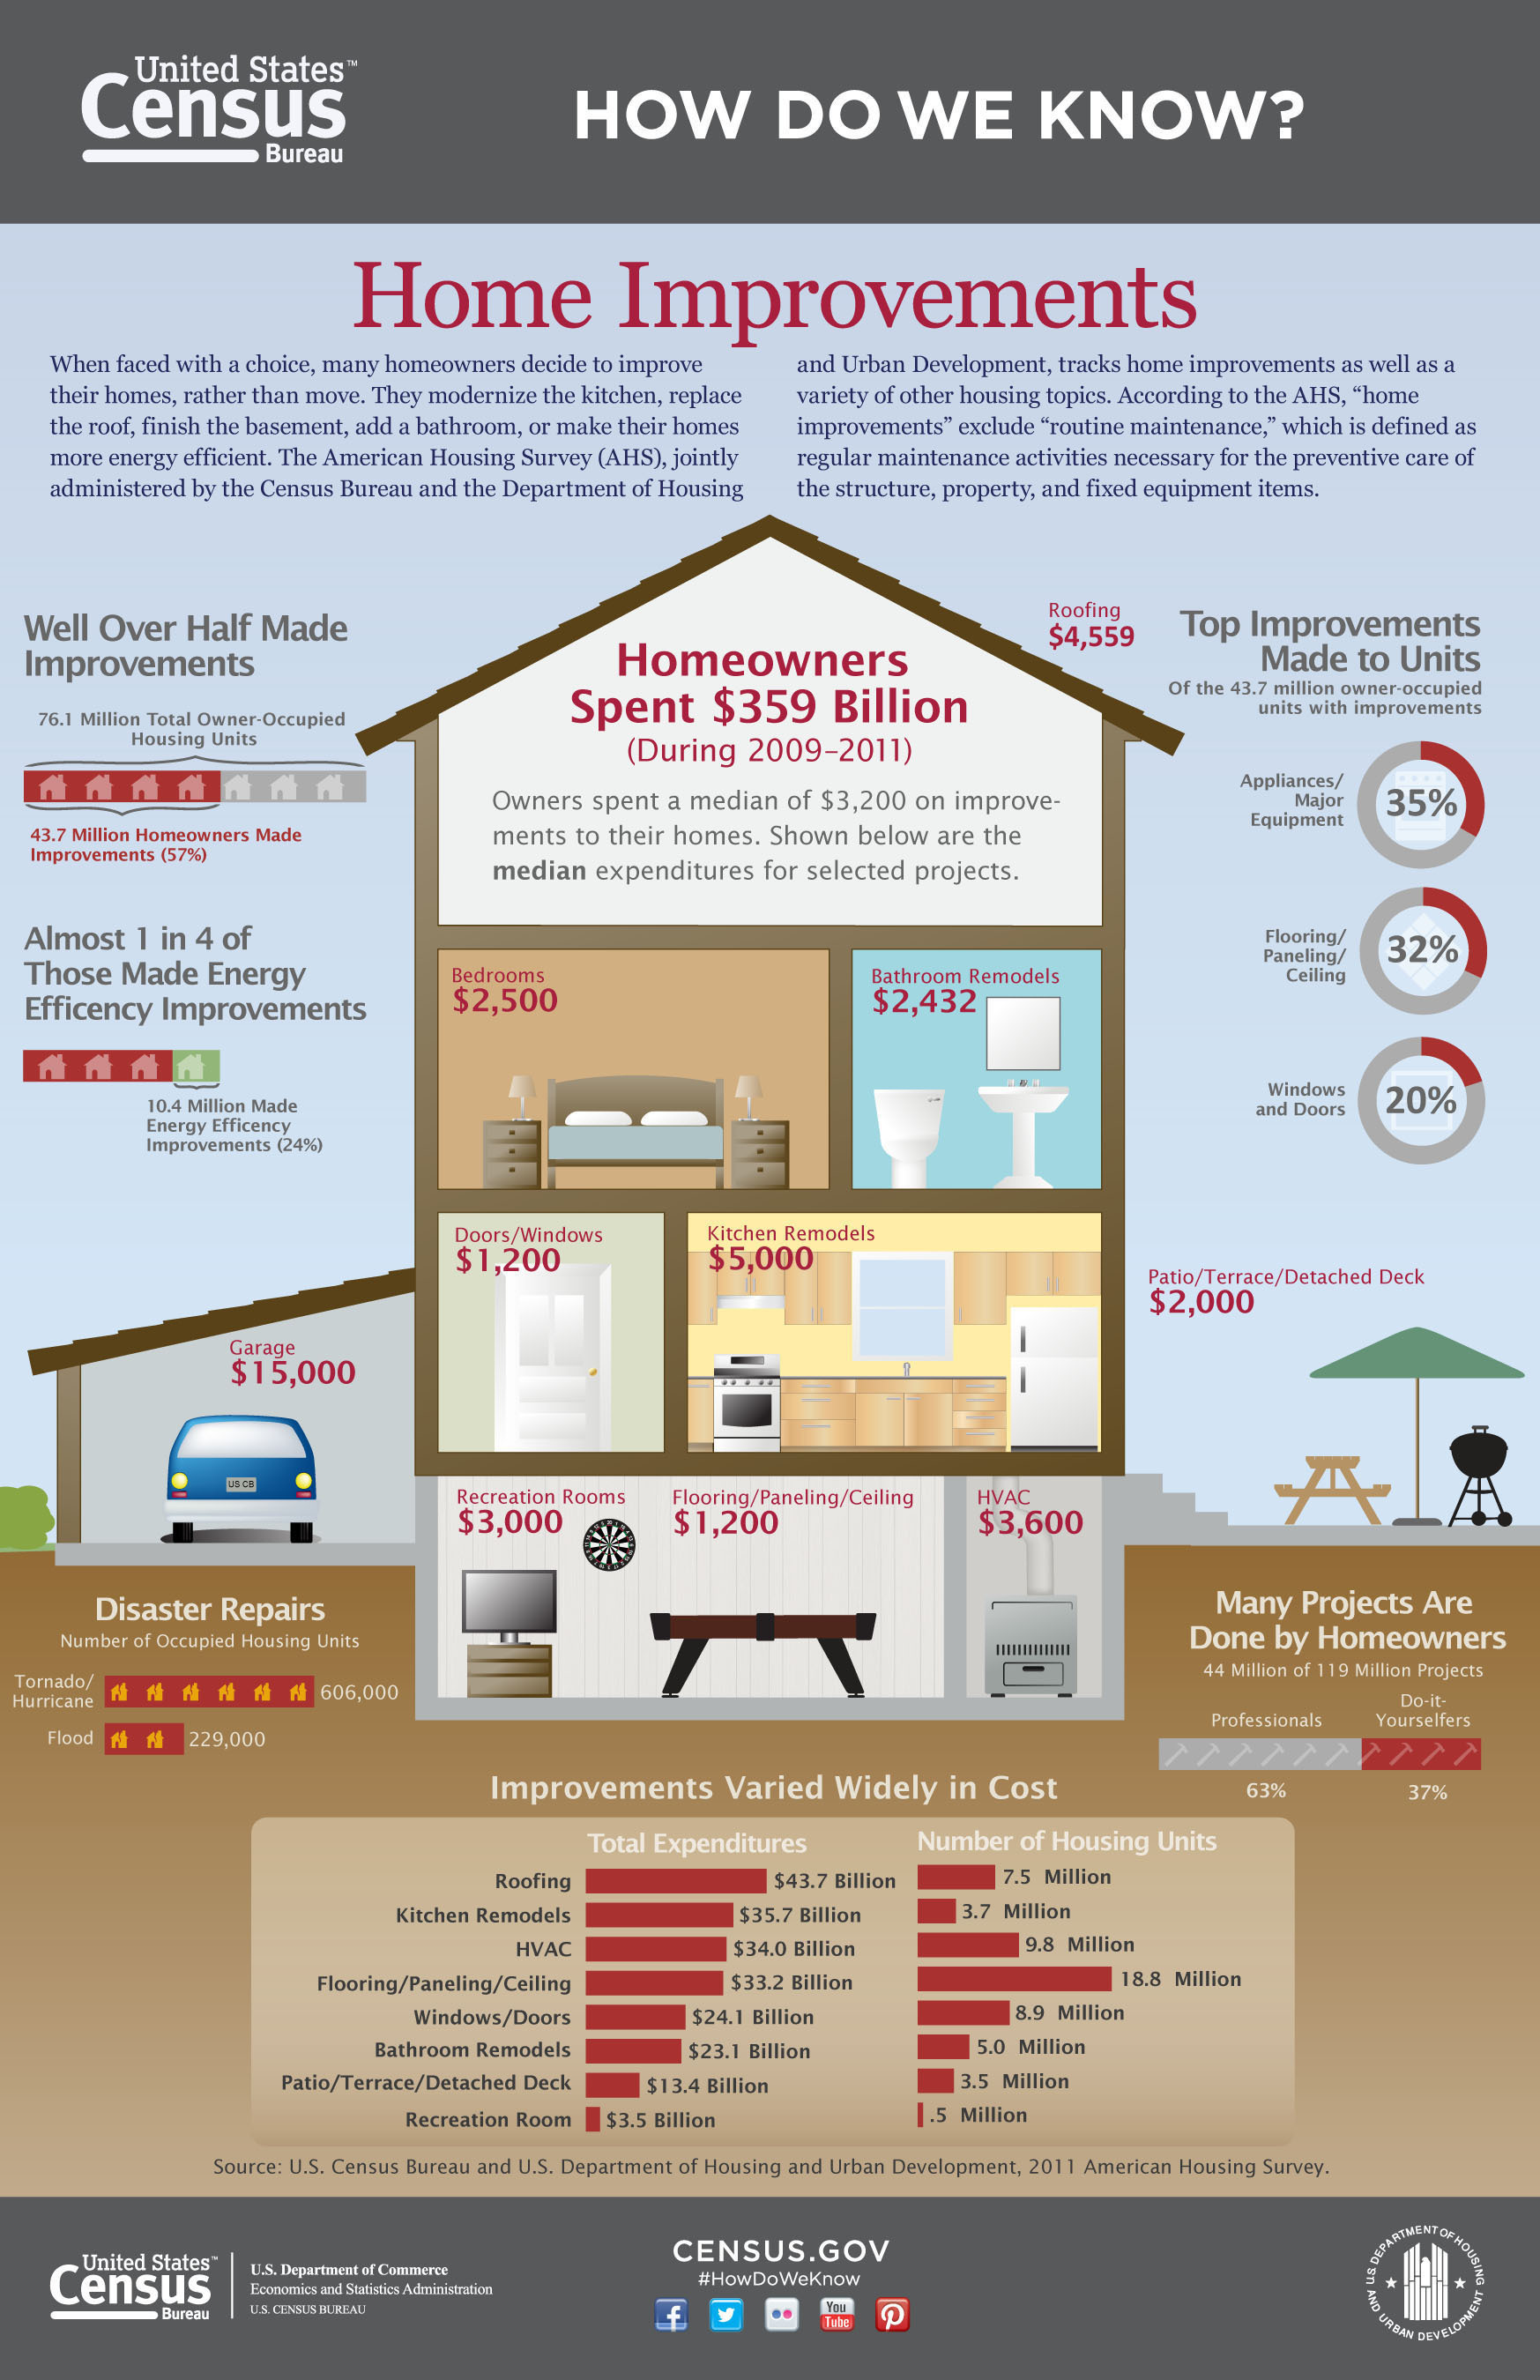 "When faced with a choice, many homeowners decide to improve their homes, rather than move. They modernize the kitchen, replace the roof or make their home more energy efficient. This ""Home Improvements"" infographic shows results from the 2011 American Housing Survey on the improvements owners make and the amount they spend on them. The survey -- jointly administered by the Census Bureau and the Department of Housing and Urban Development -- tracks home improvements and a large variety of other housing topics. ..."